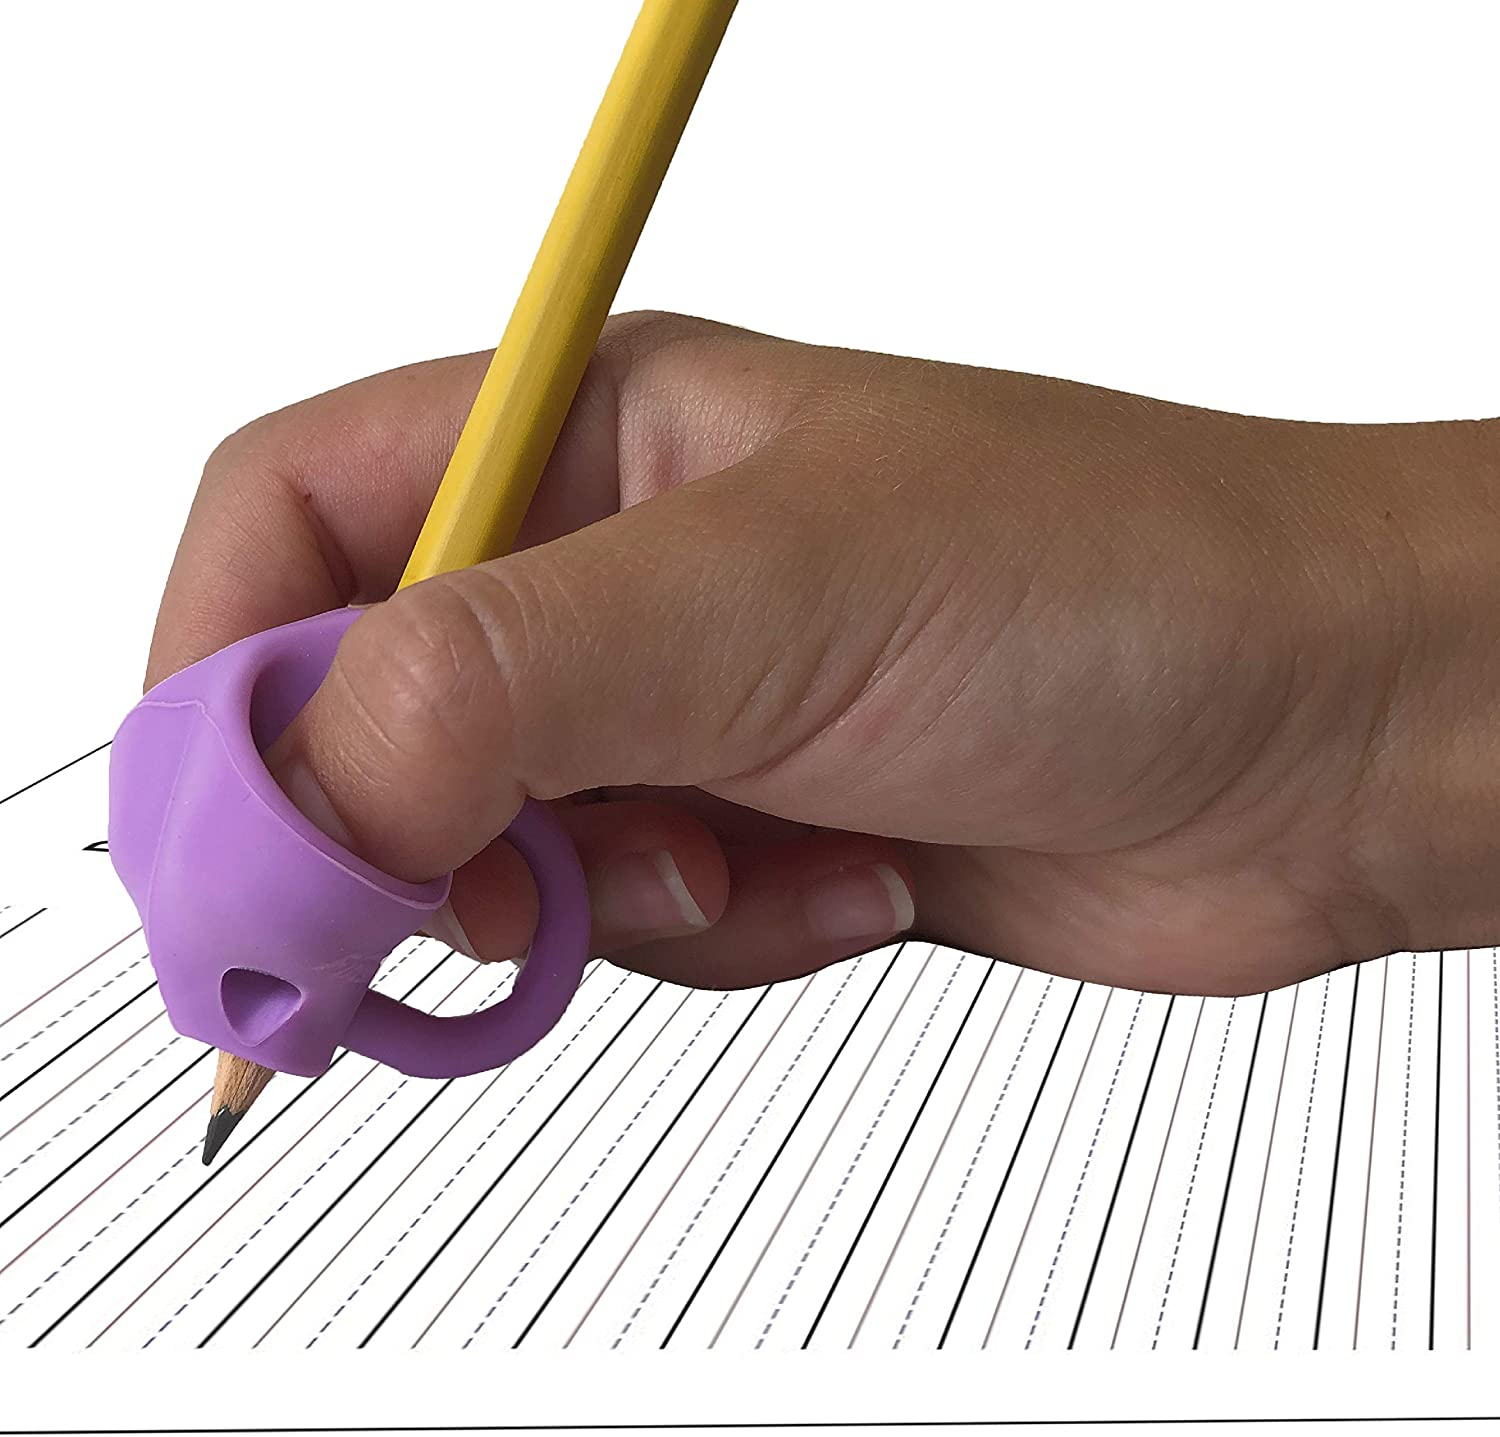 Handwriting Grip Ergonomic Training Pencil Grip Bright Autism Preschoolers Writing Tool for Toddlers 3 Pack Pencil Holder for Kids Pencil Grips for Kids Handwriting-Learning Children